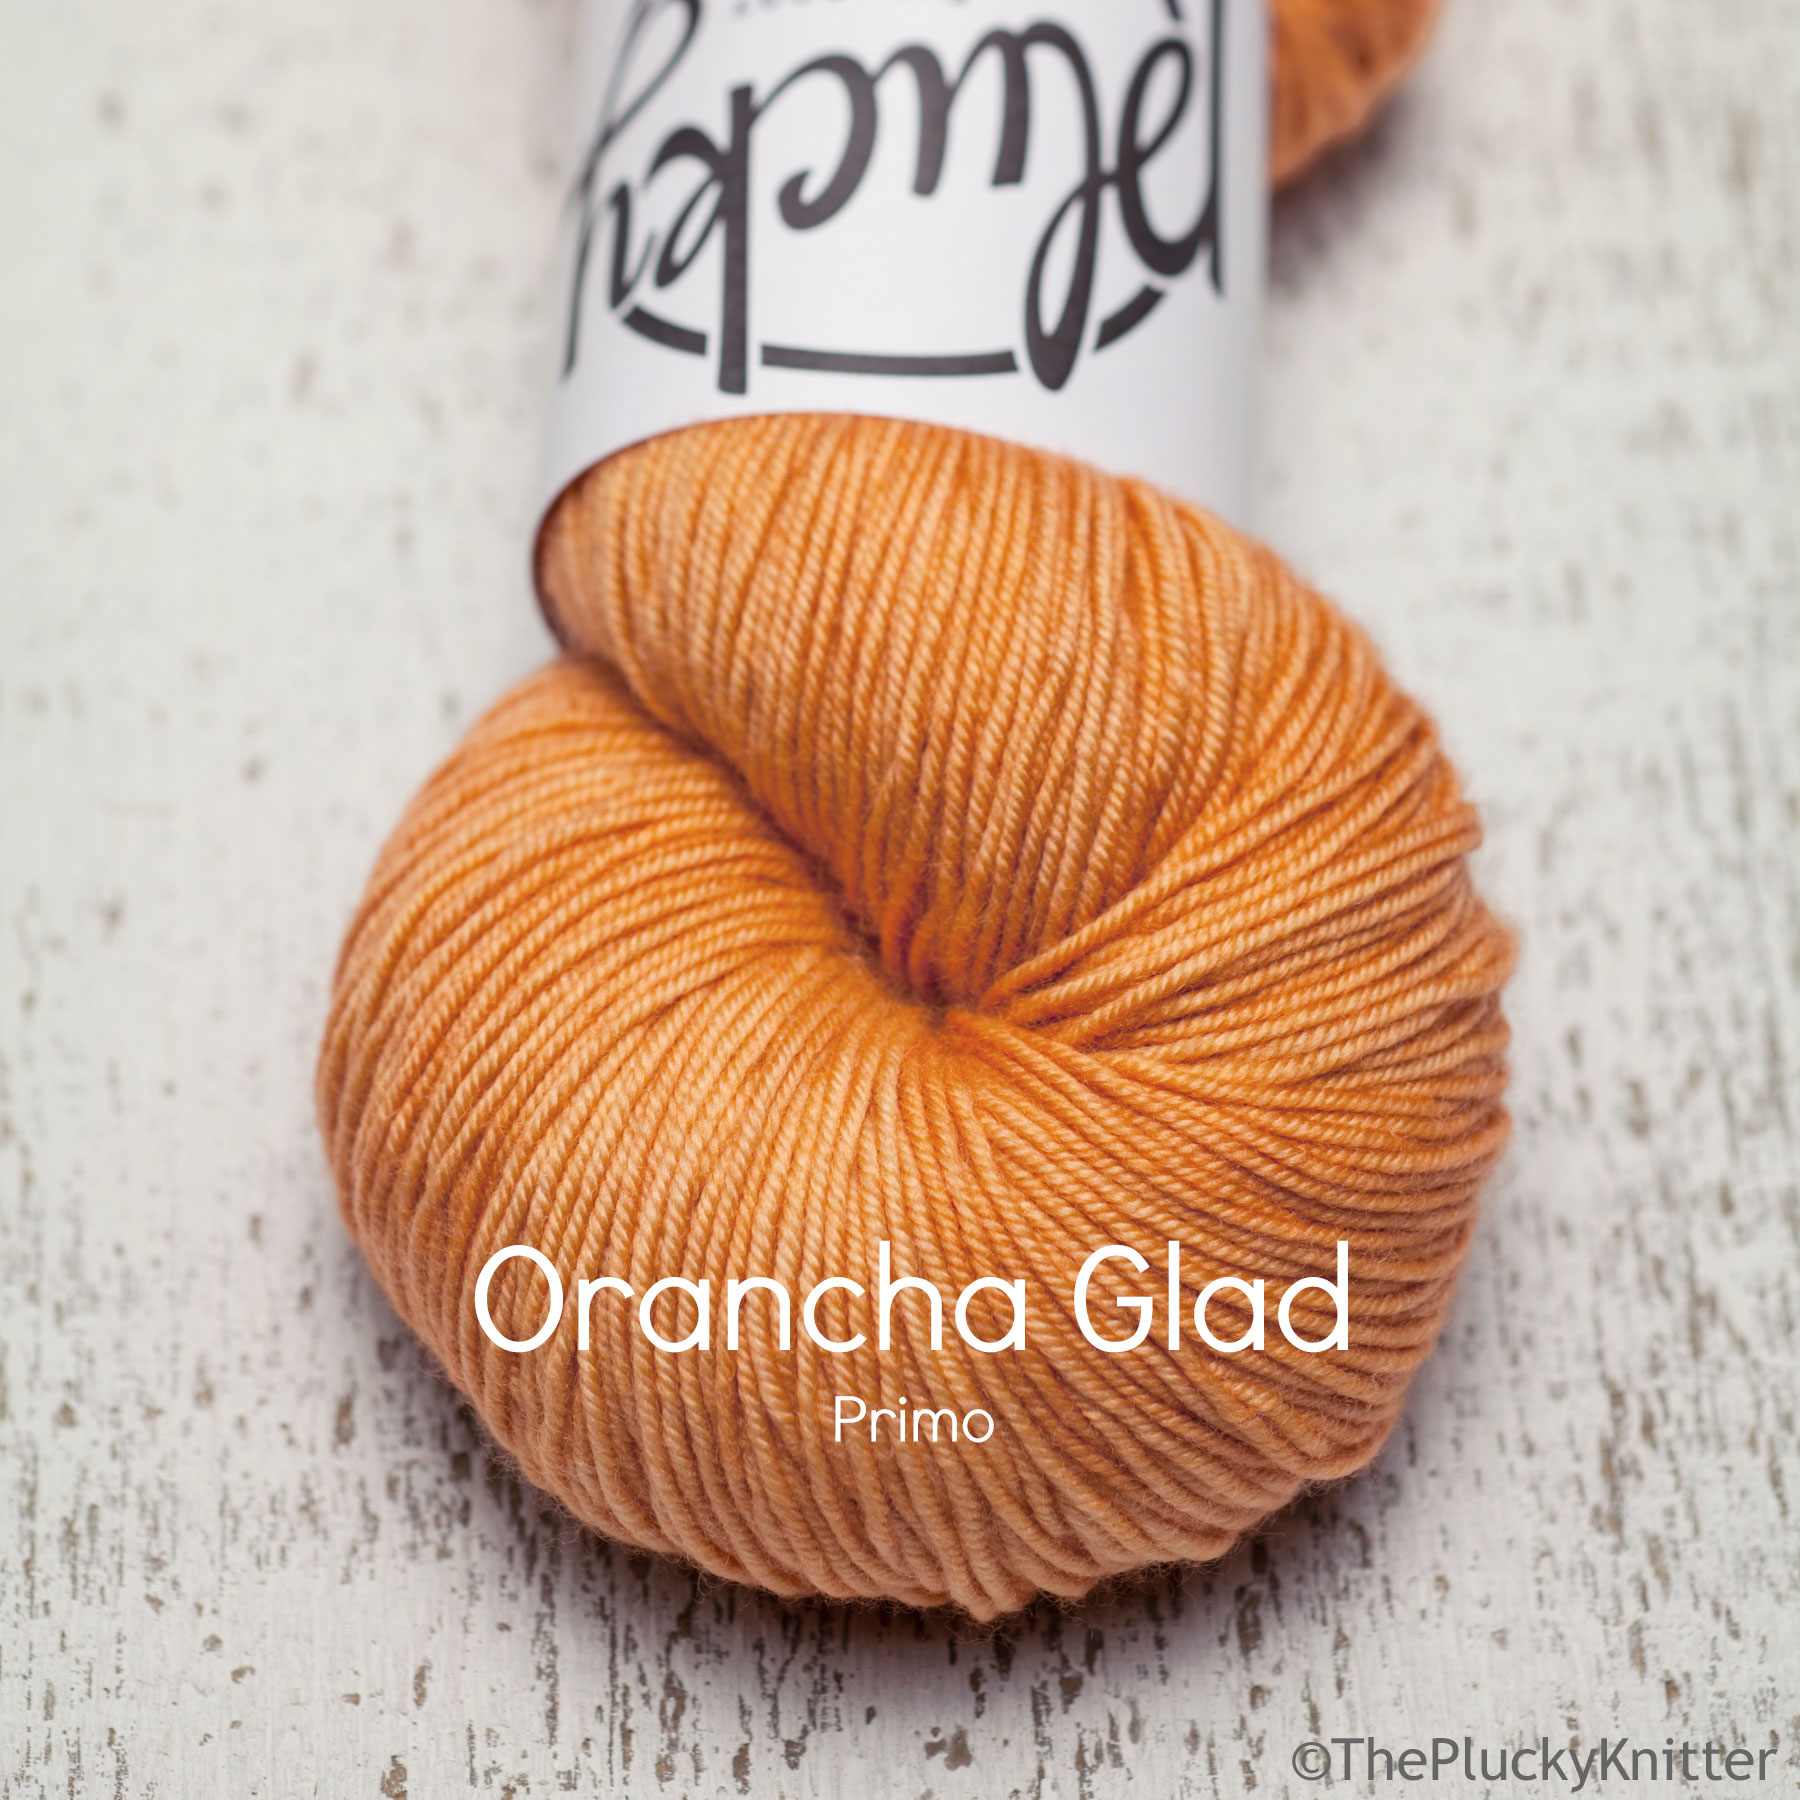 Orancha Glad - Snug Fingering